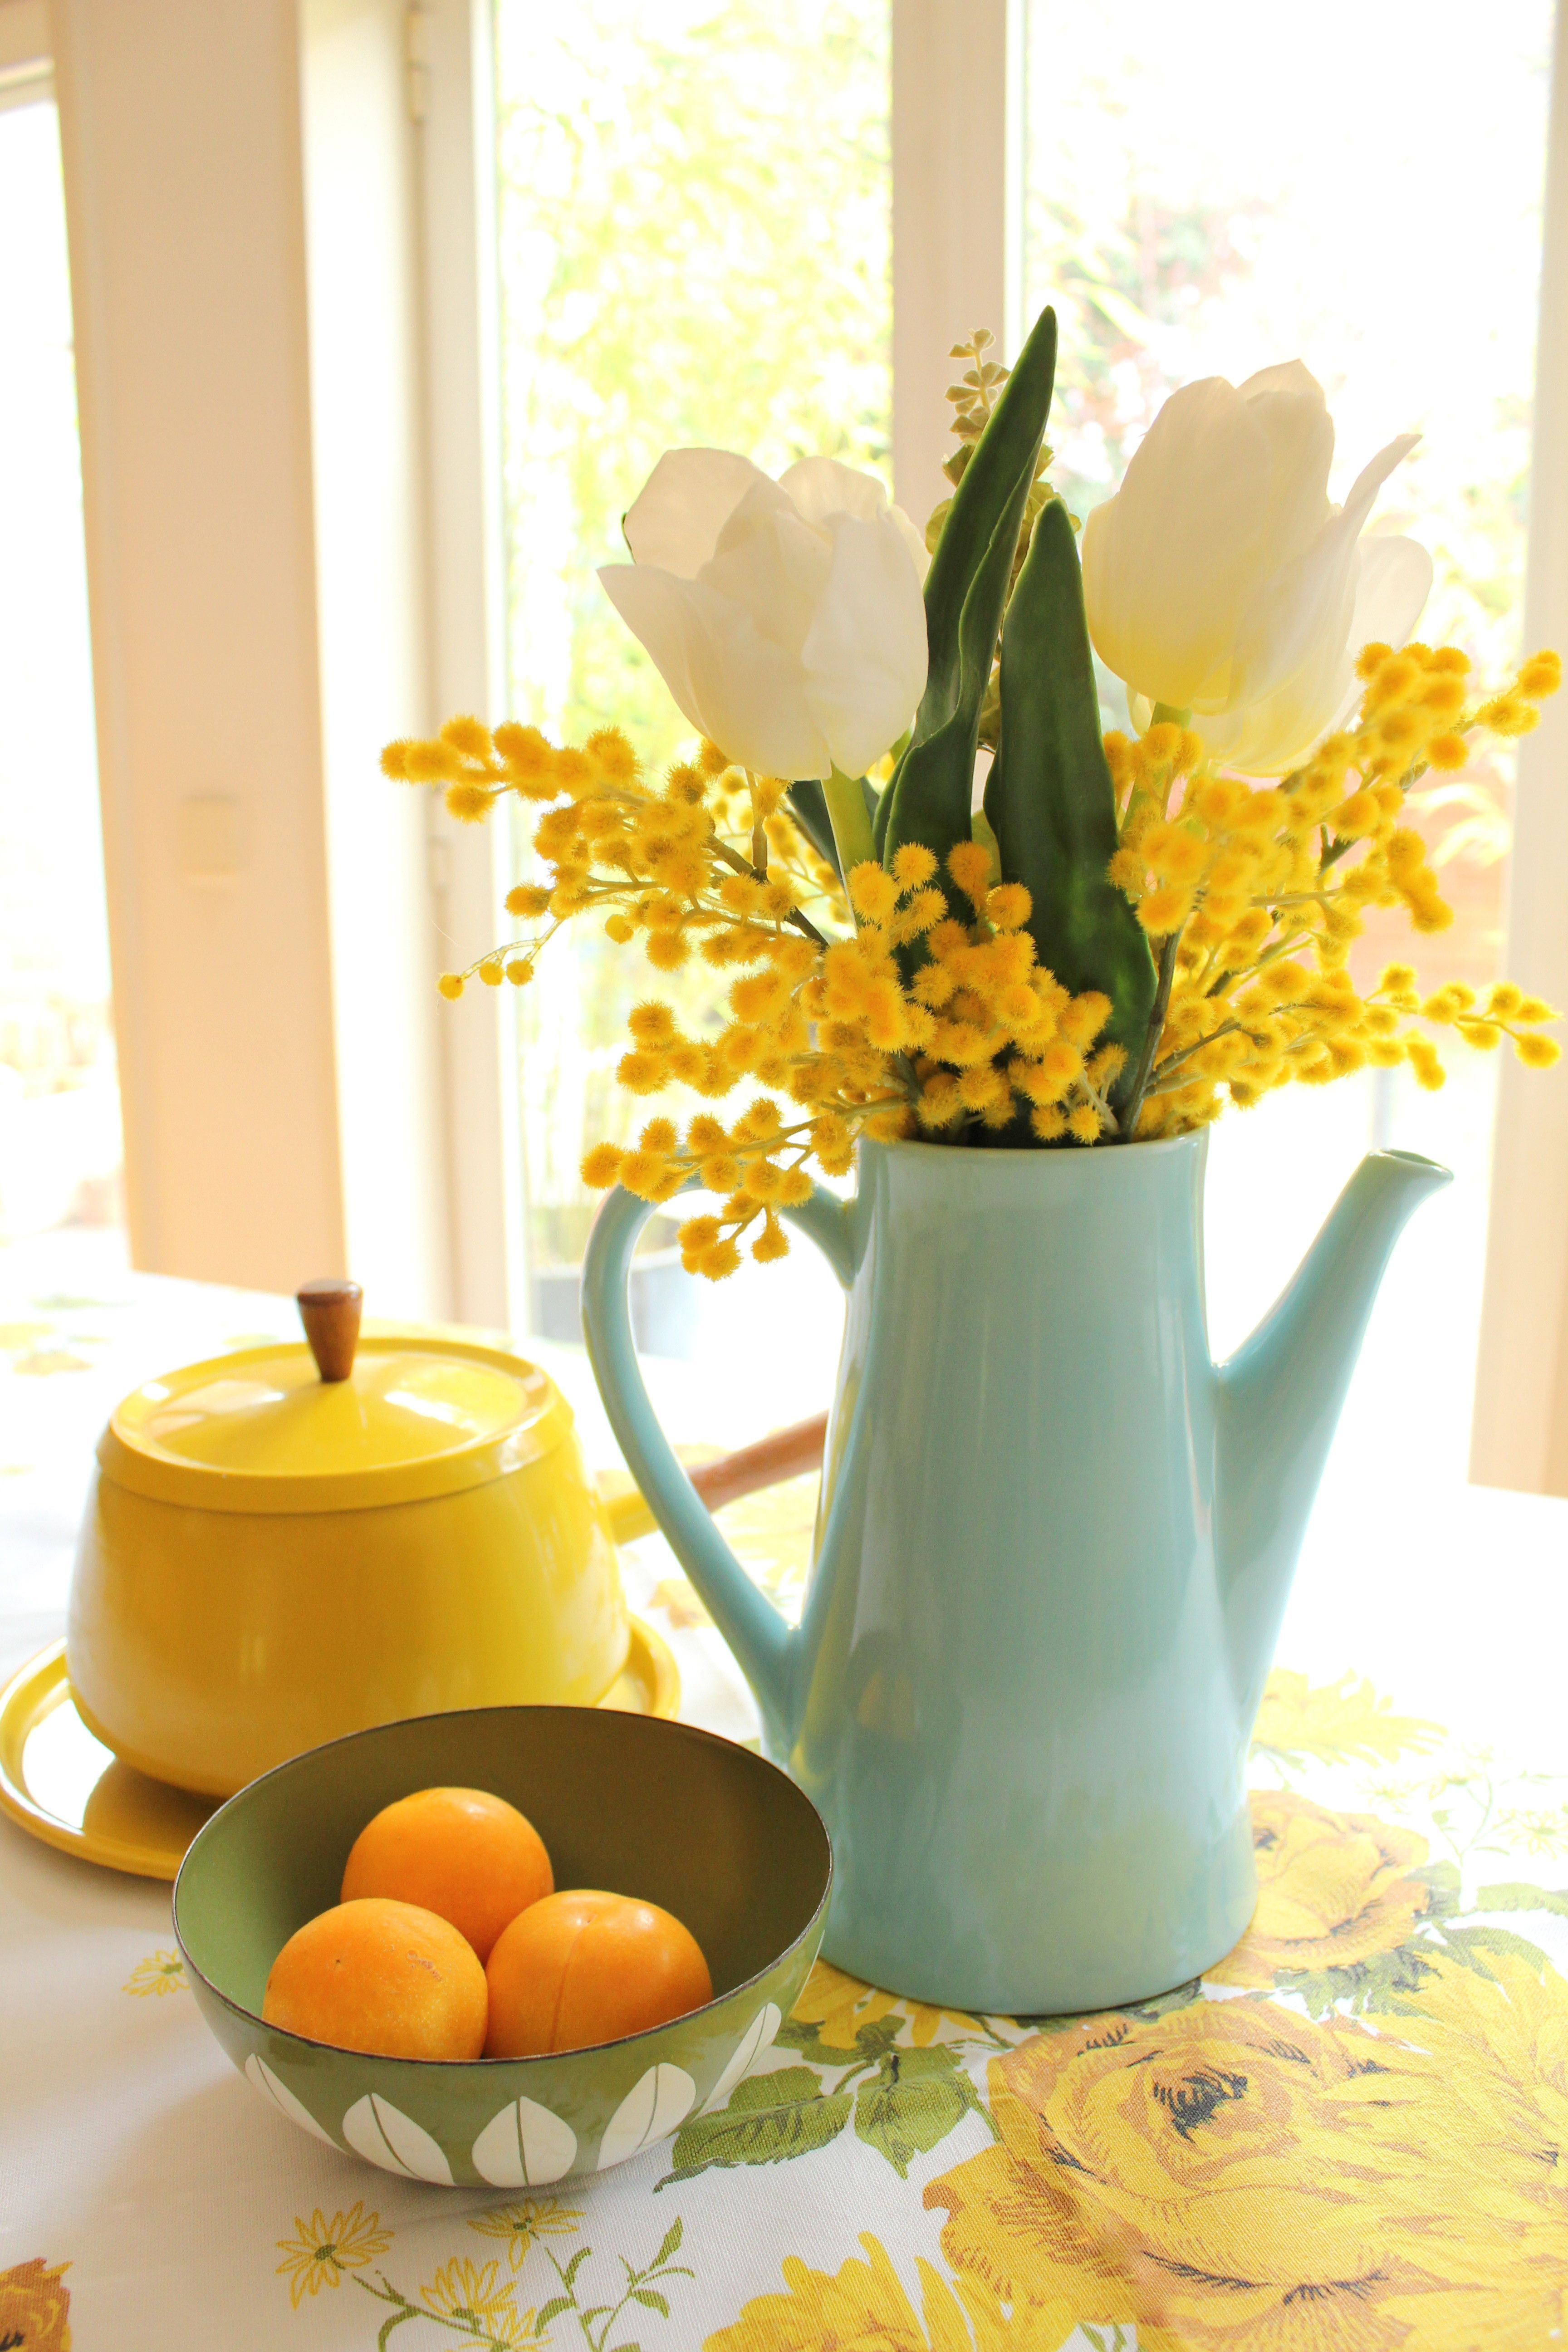 Take a look at the following features to complete your yellow kitchen decor